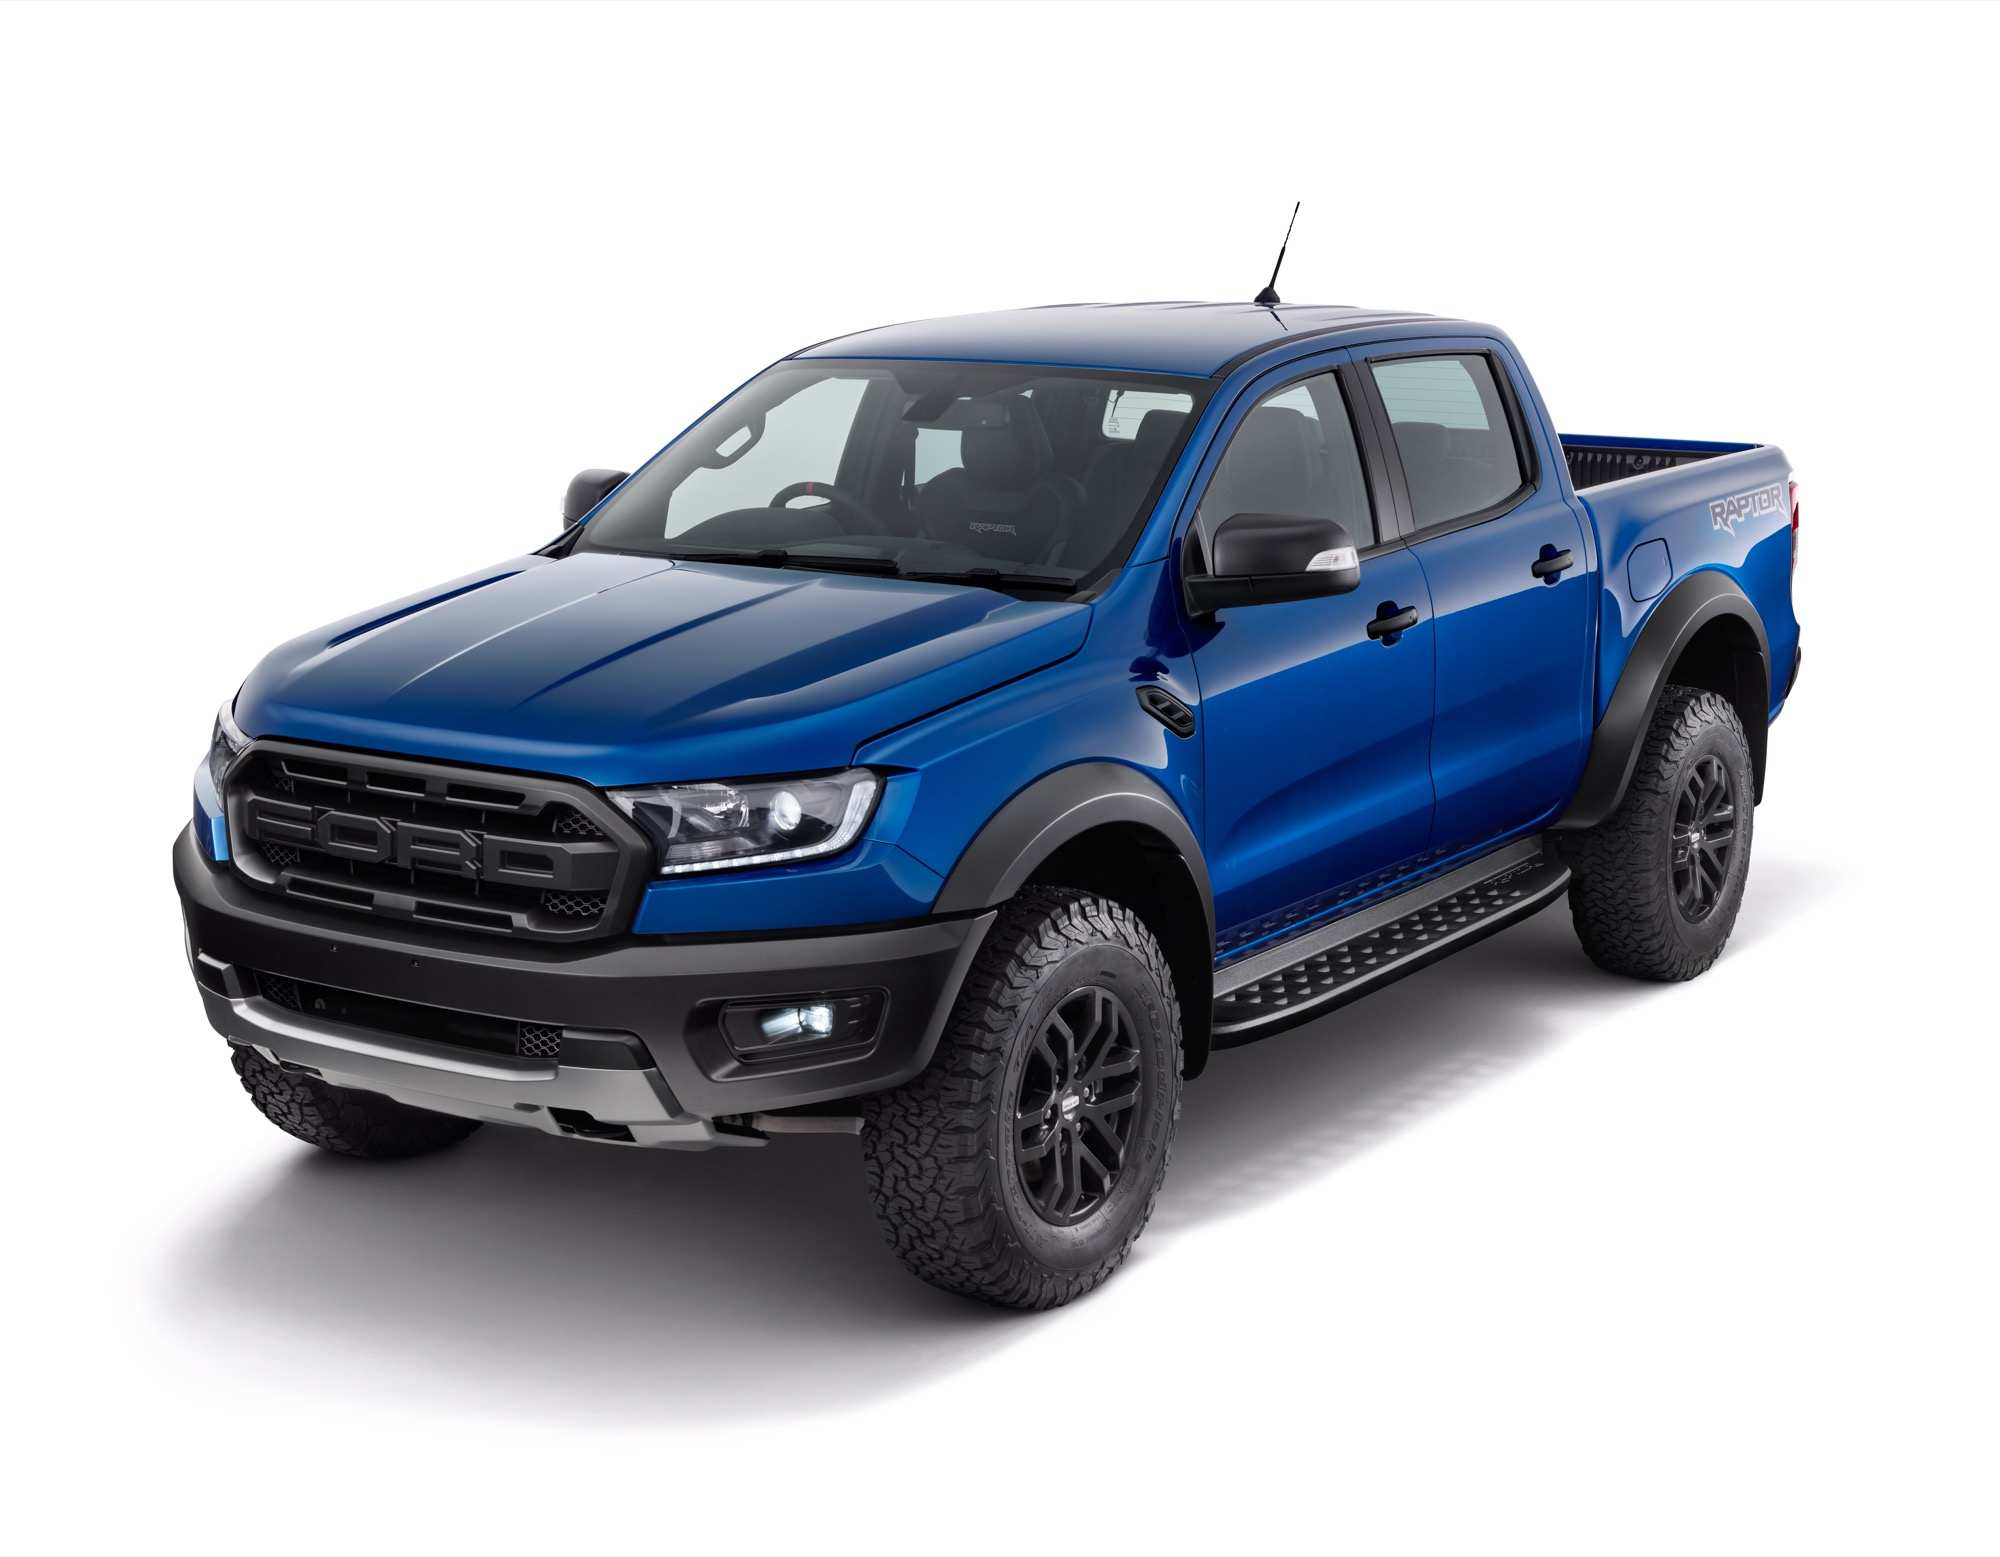 23 Best Review The 2019 Ford Ranger Canada Engine Spy Shoot by The 2019 Ford Ranger Canada Engine